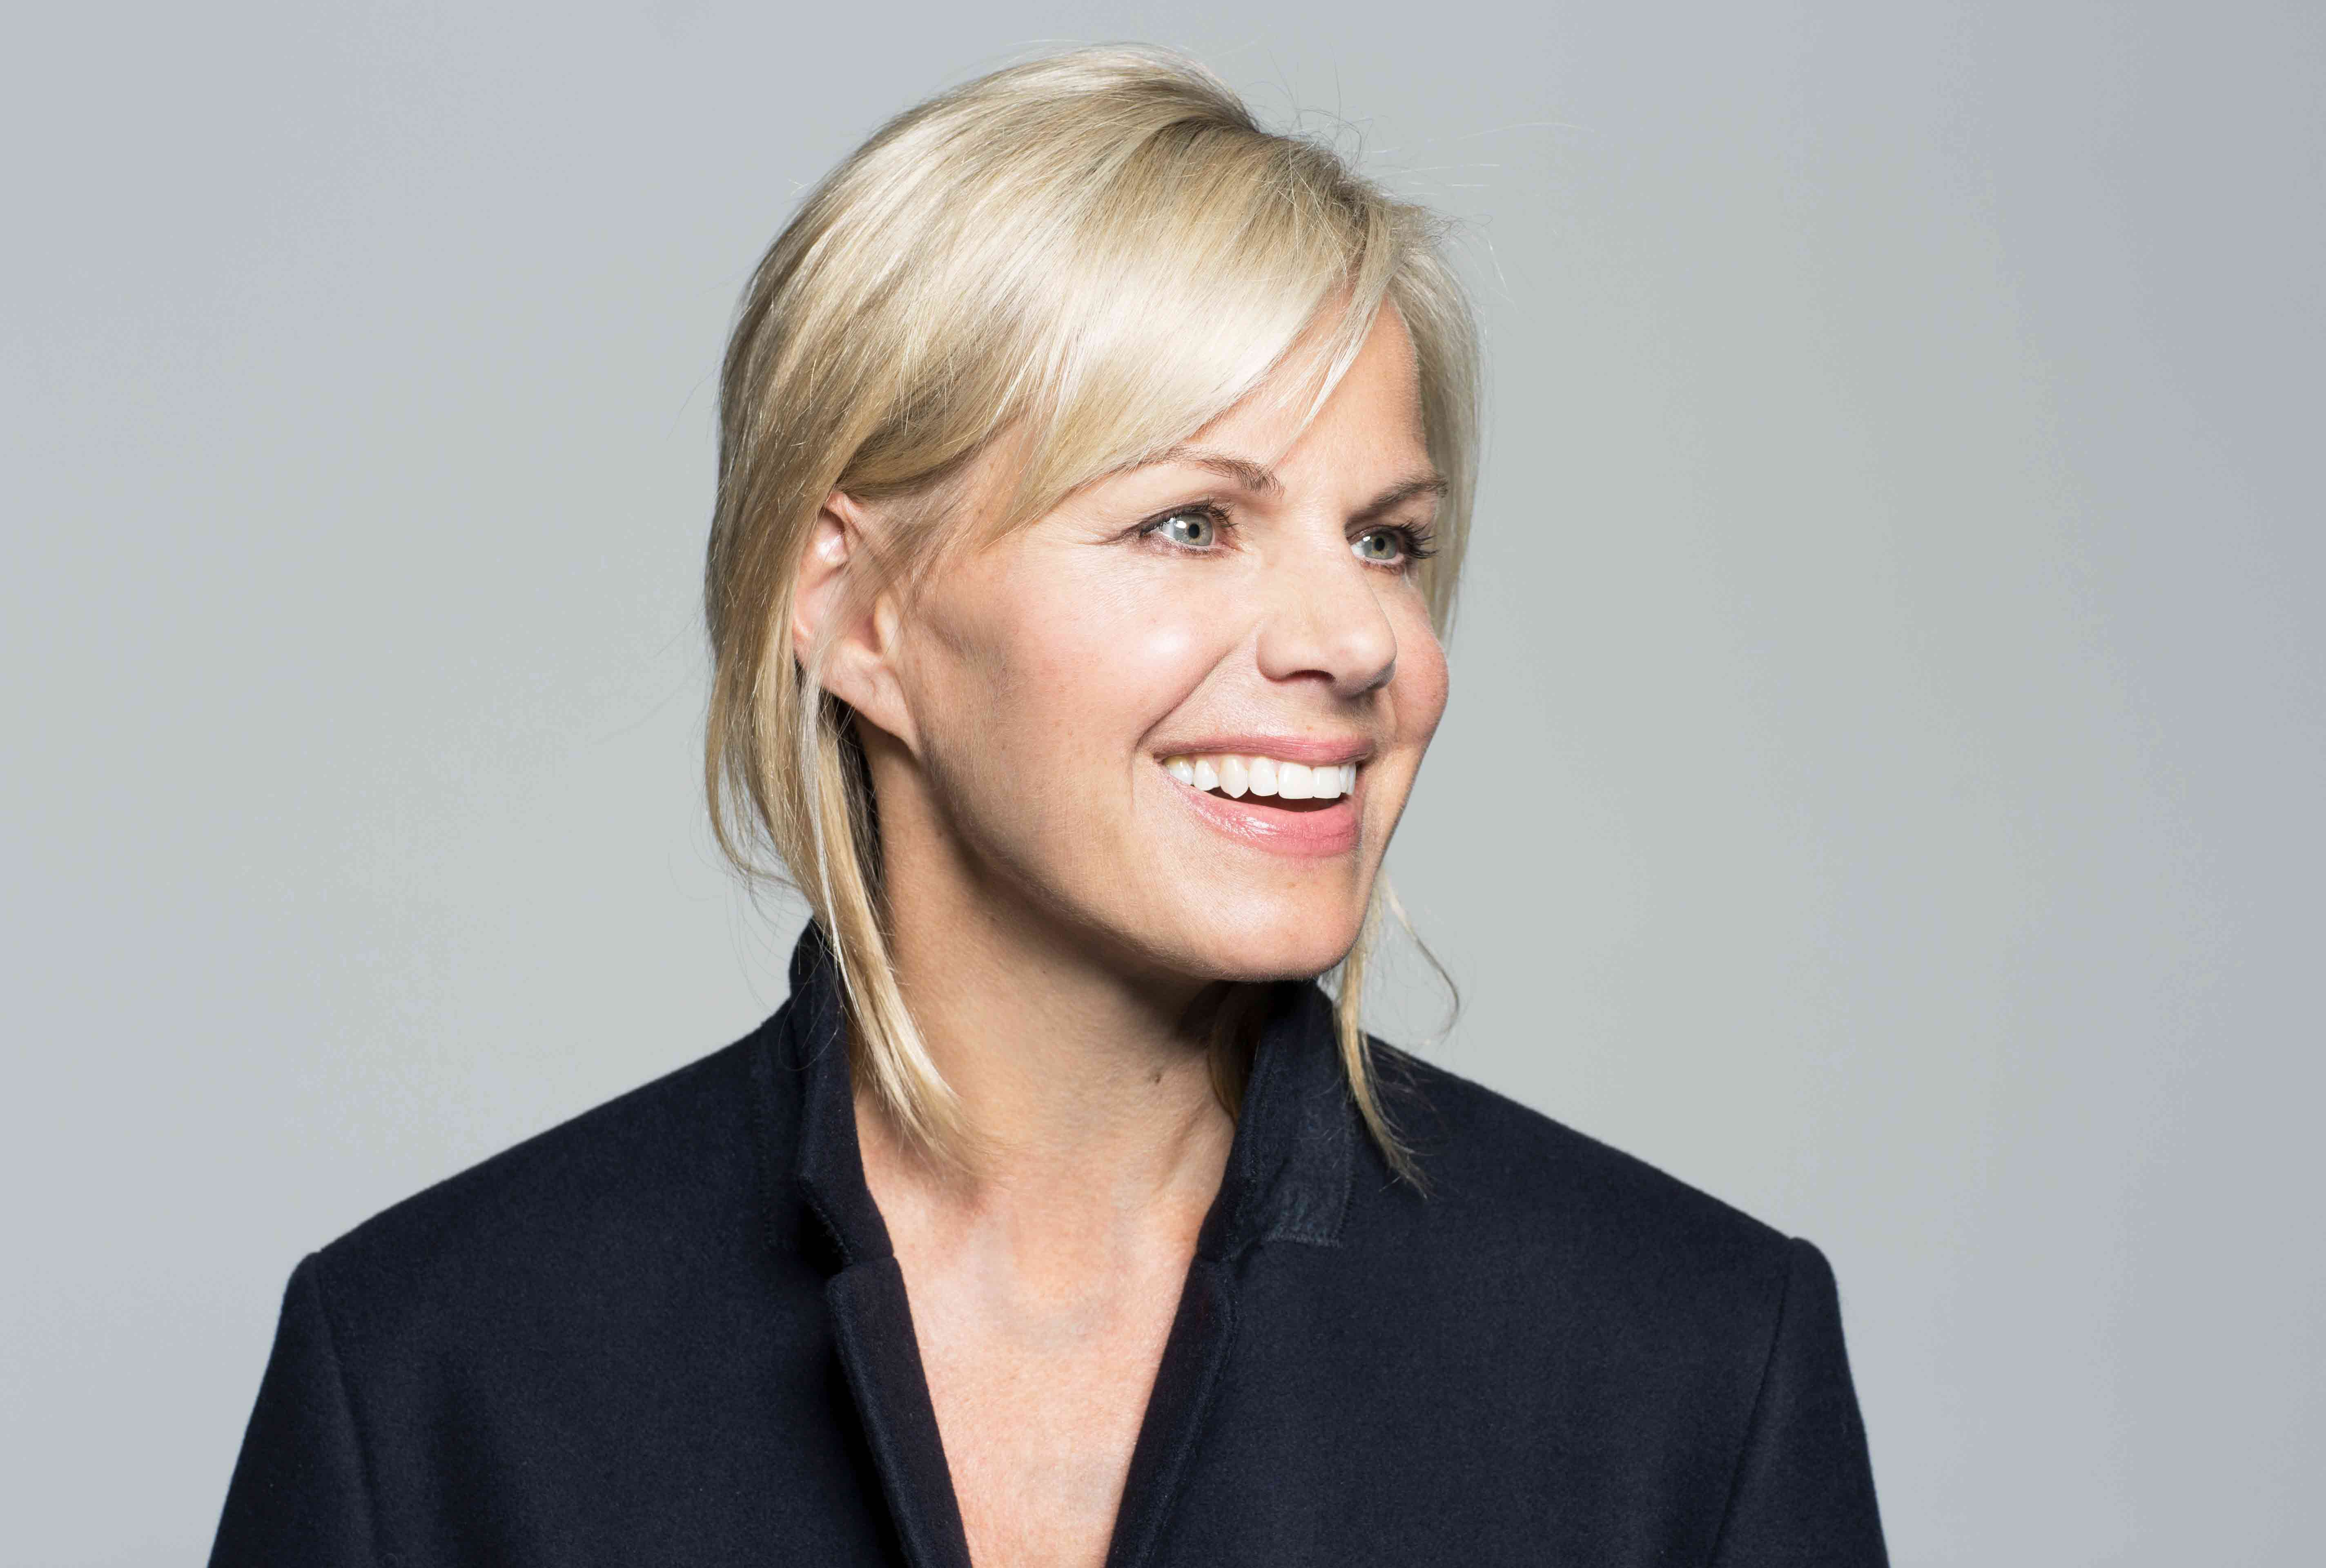 Meet Gretchen Carlson, The American TV News Veteran Who Paved The Way For The #MeToo Movement